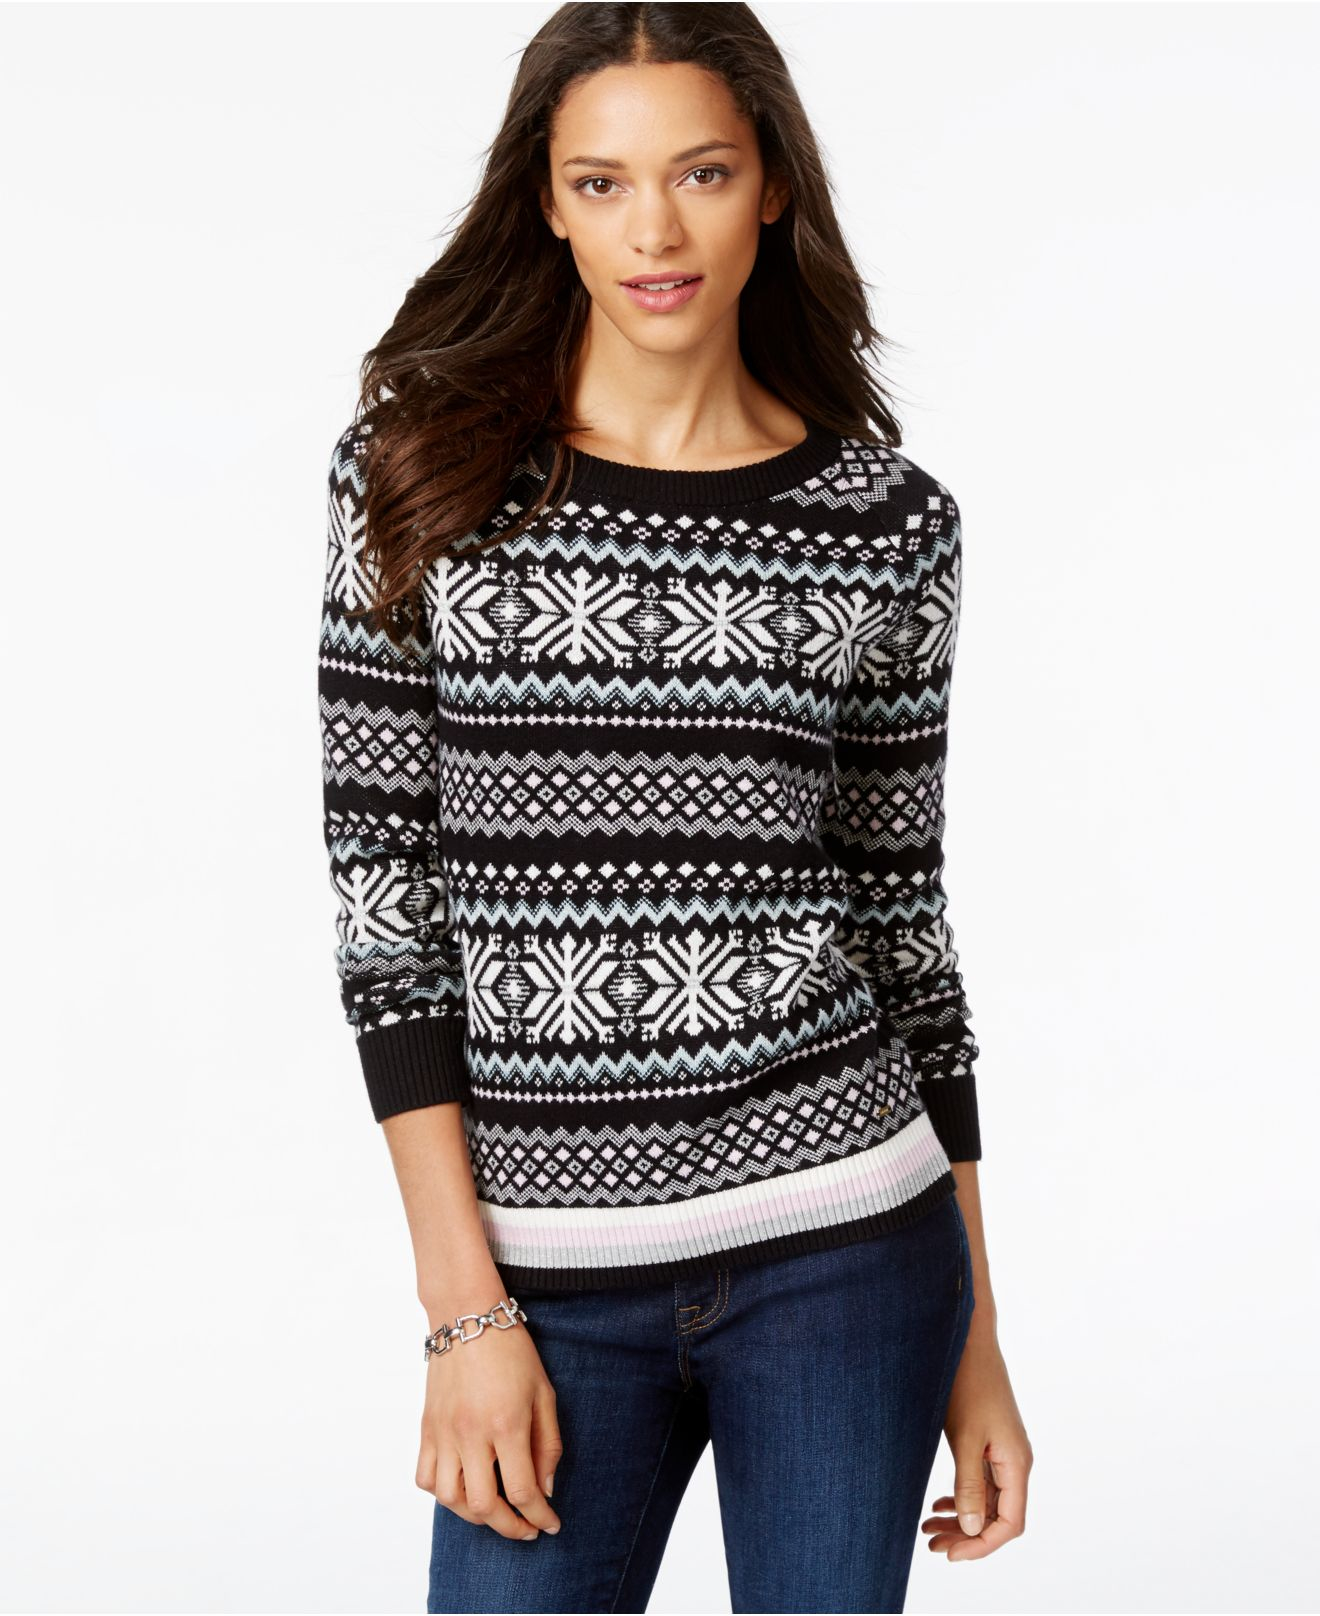 Tommy hilfiger Printed Fairisle Sweater in Black | Lyst